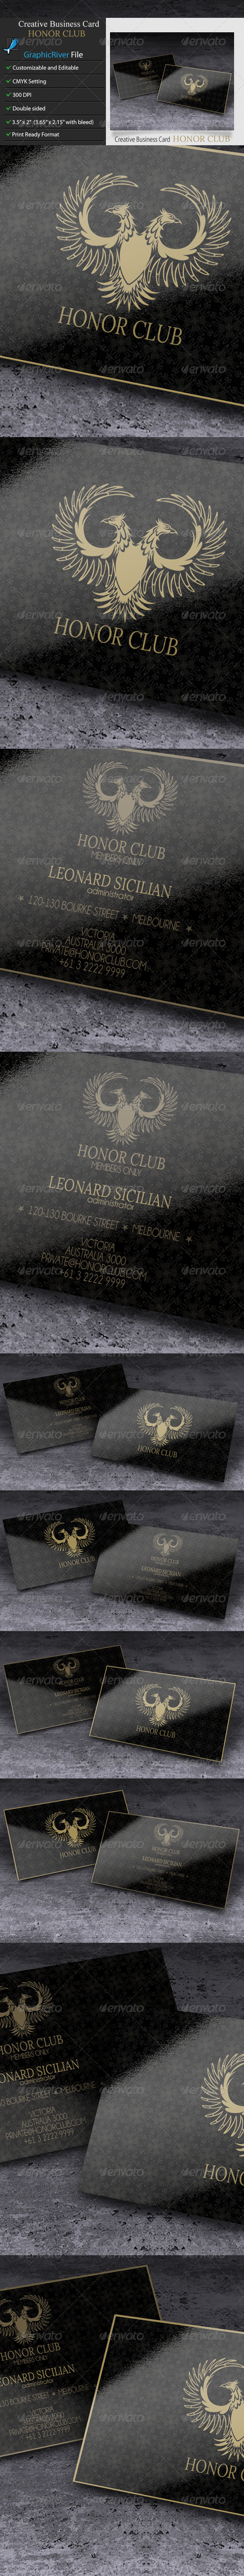 GraphicRiver Creative Business Card Honor Club 6029363